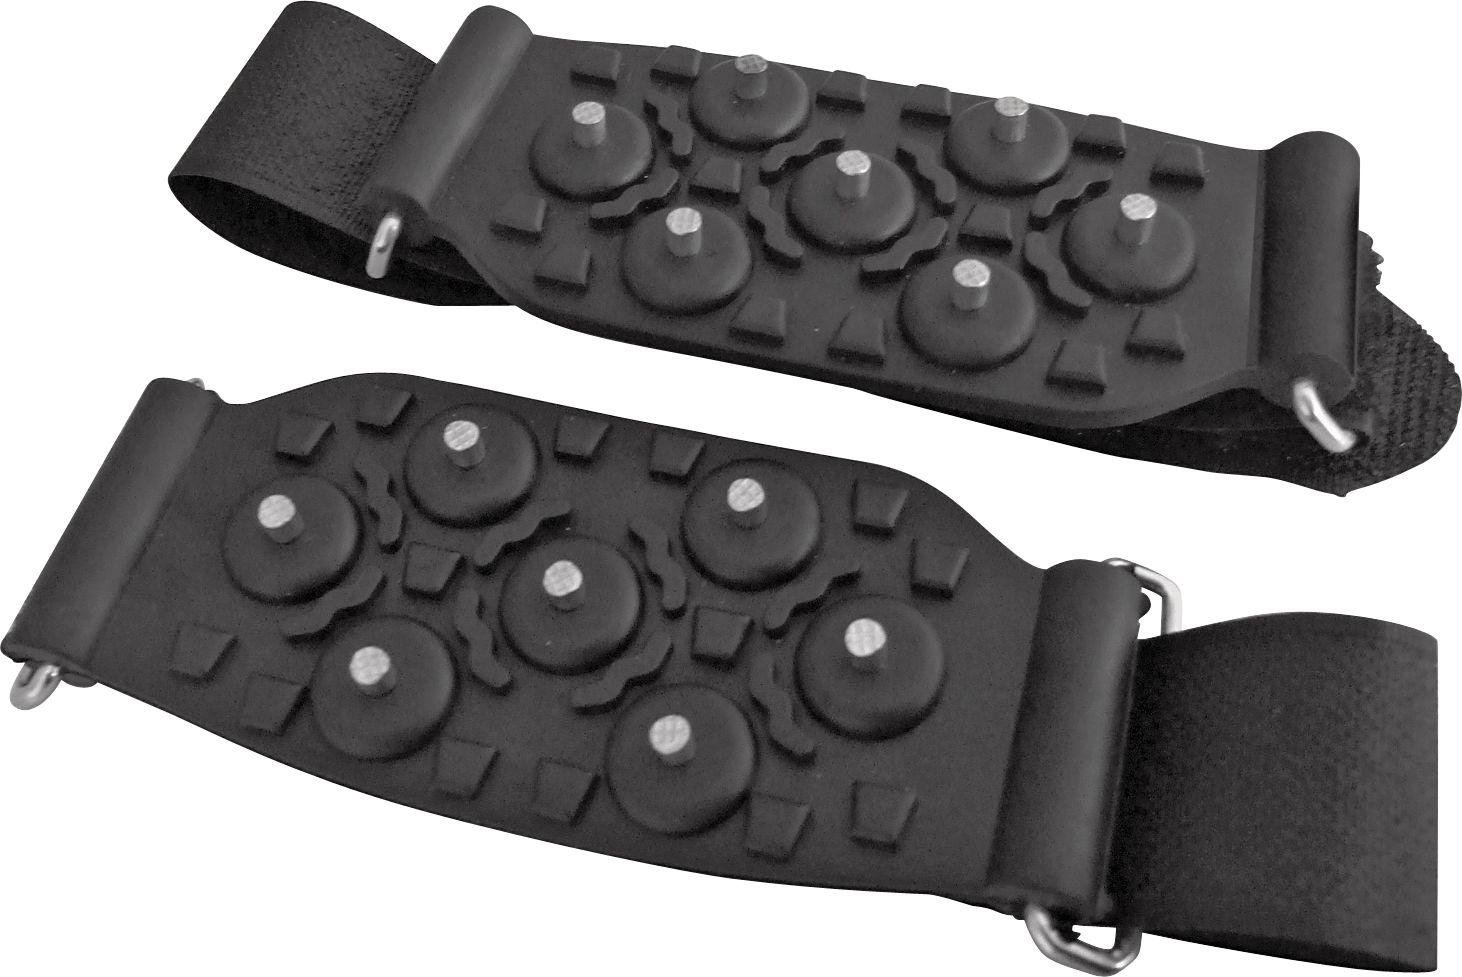 Universal Studded Snow and Ice Grips - Pack of 2 lowest price